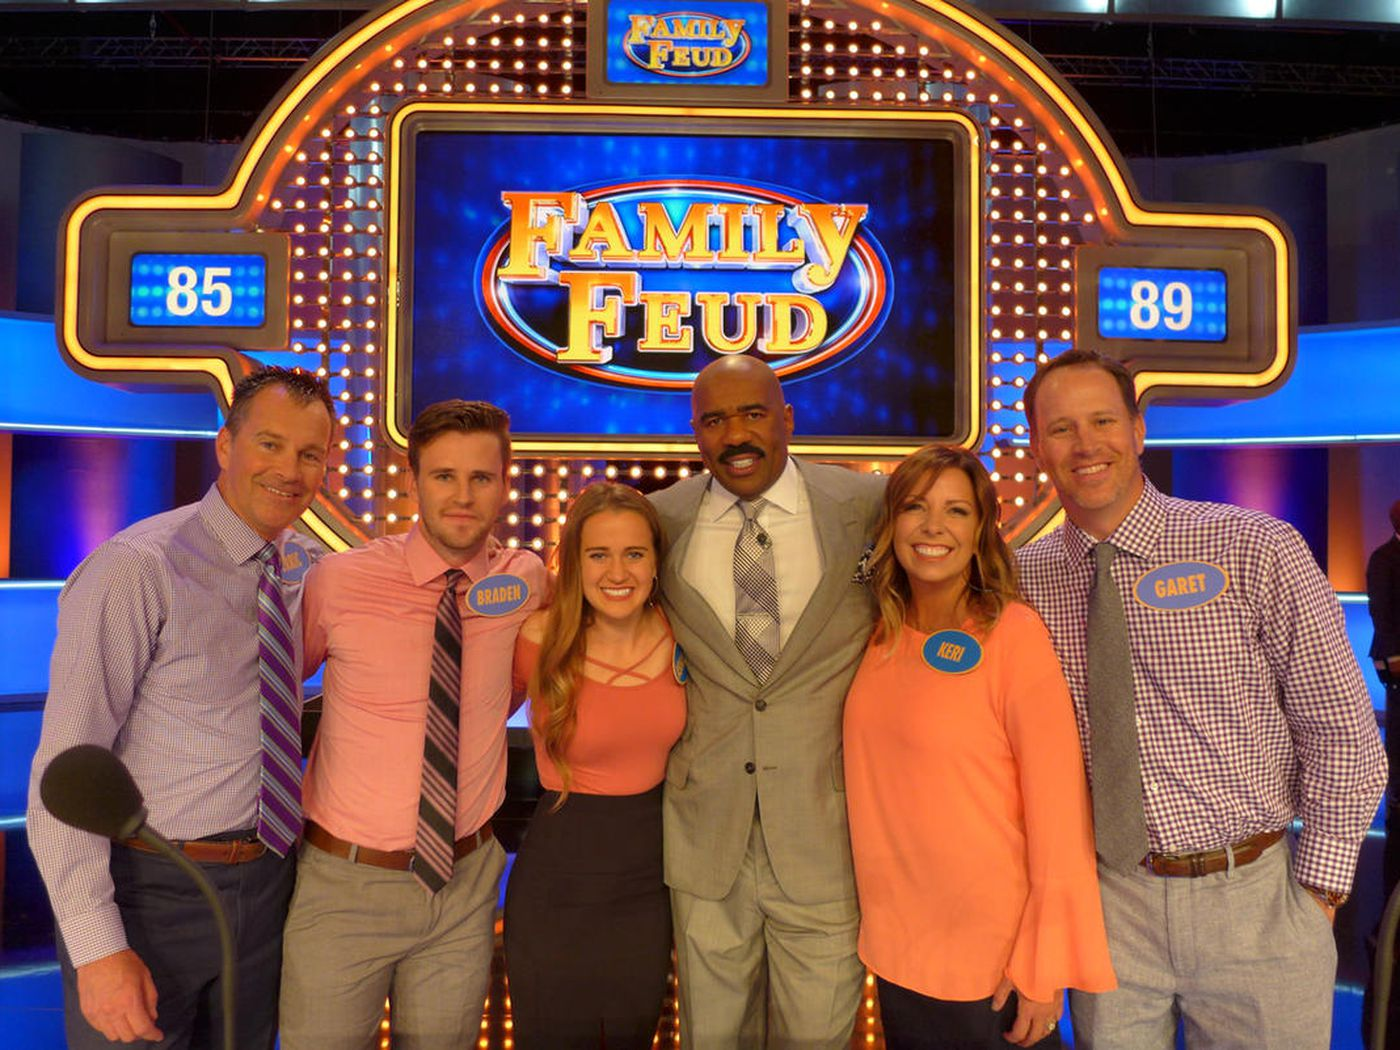 Watch Steve Harvey flash the U this week on 'Family Feud